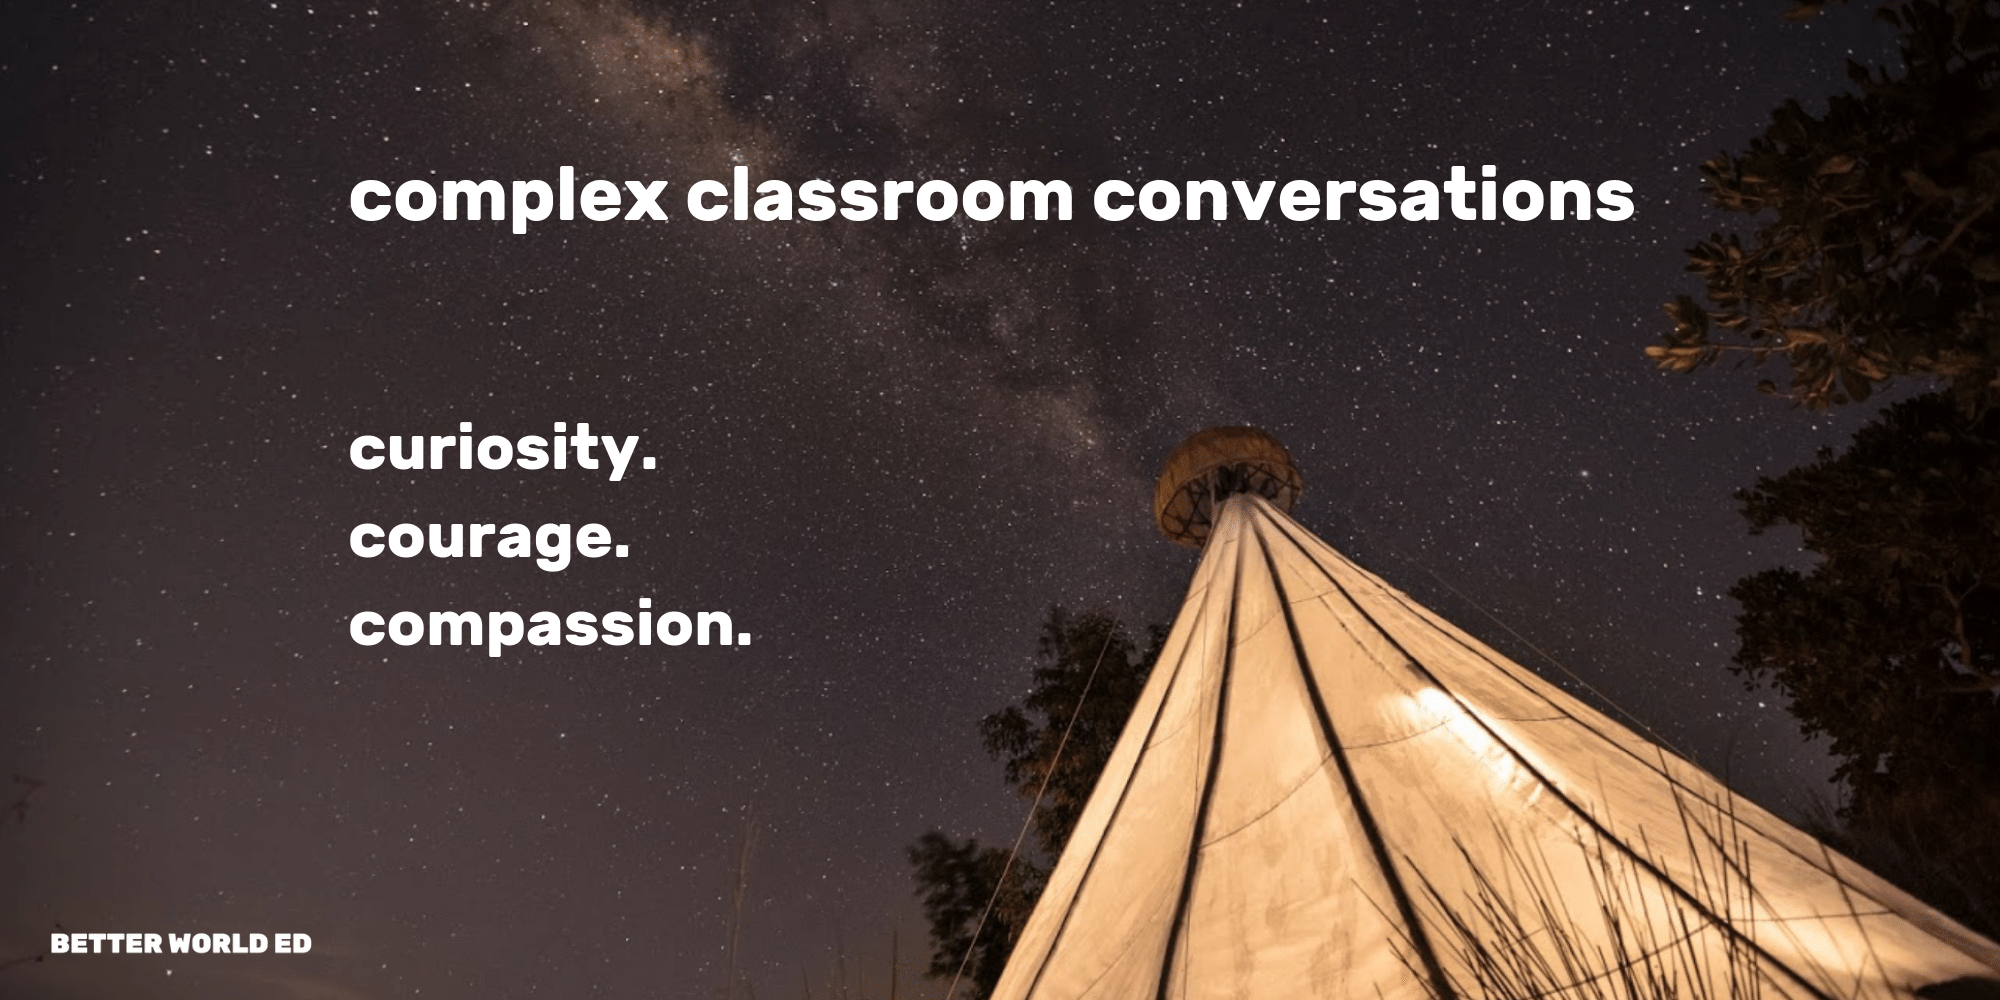 Having complex classroom conversations with courage and compassion